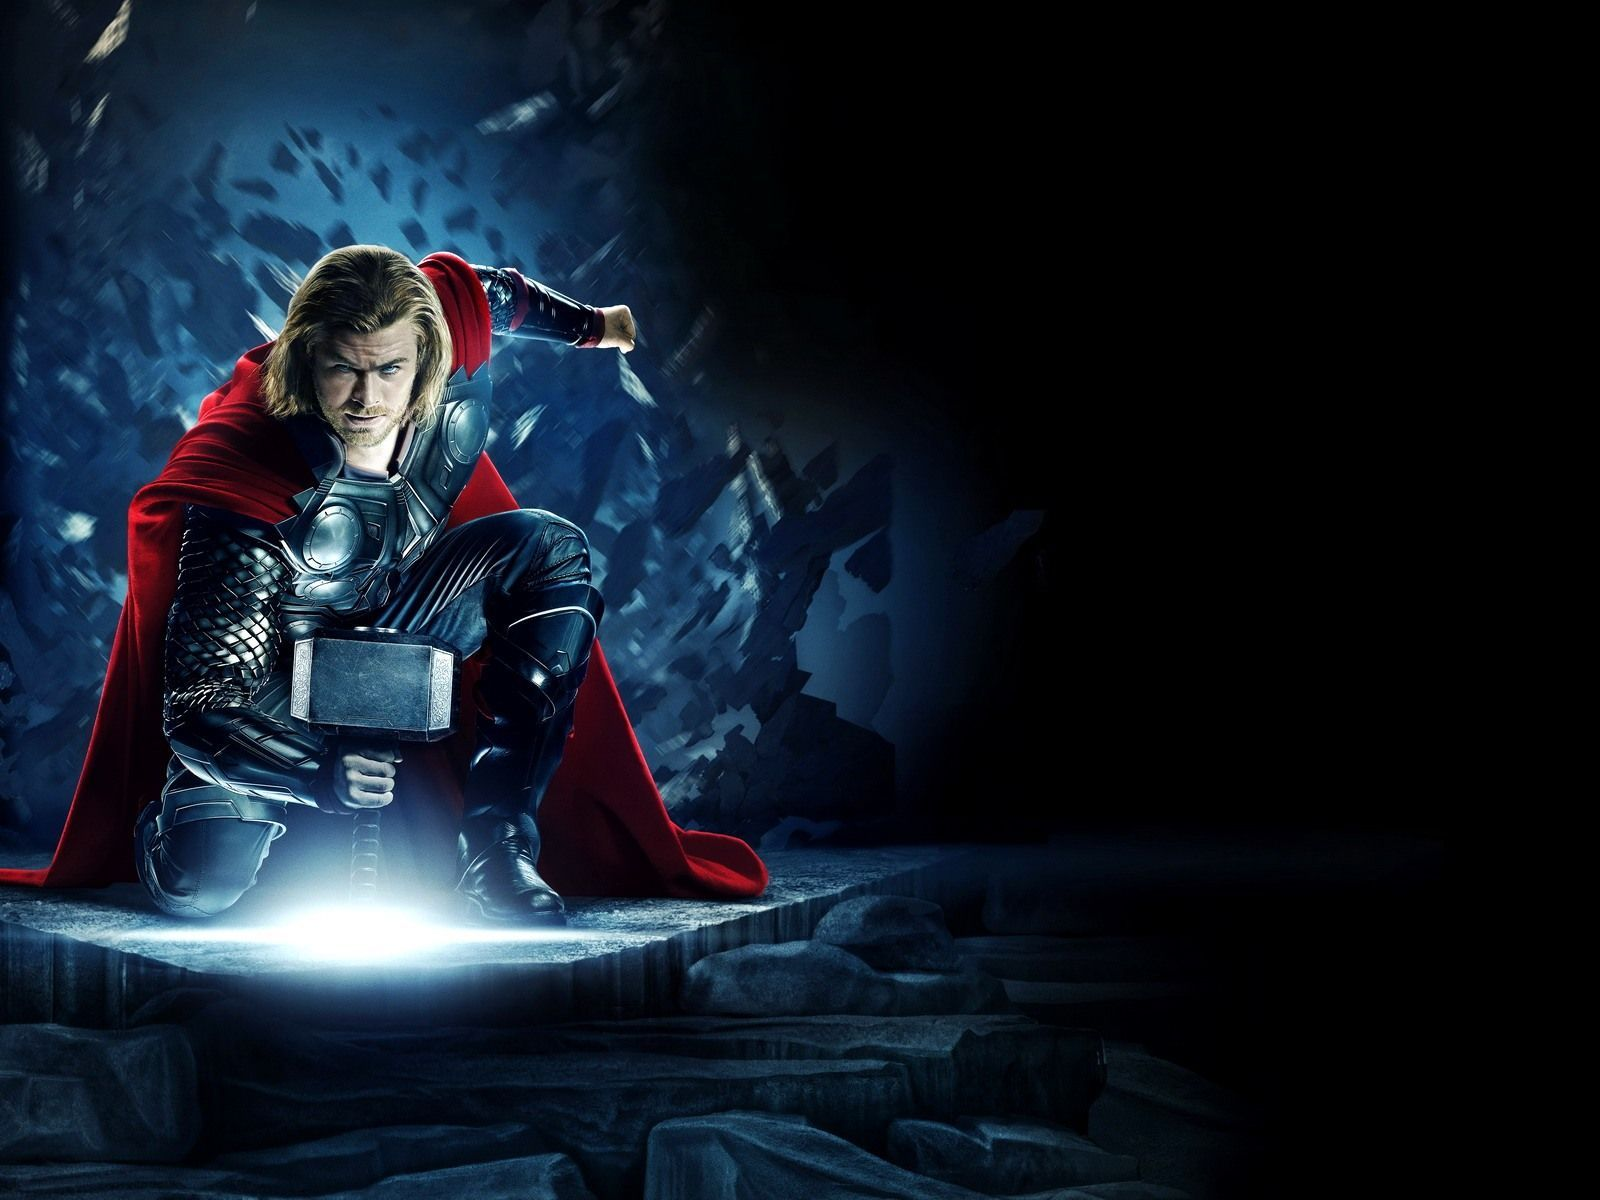 4k Wallpaper For Pc Thor Trick Thor Wallpaper Thor 4k Wallpapers For Pc